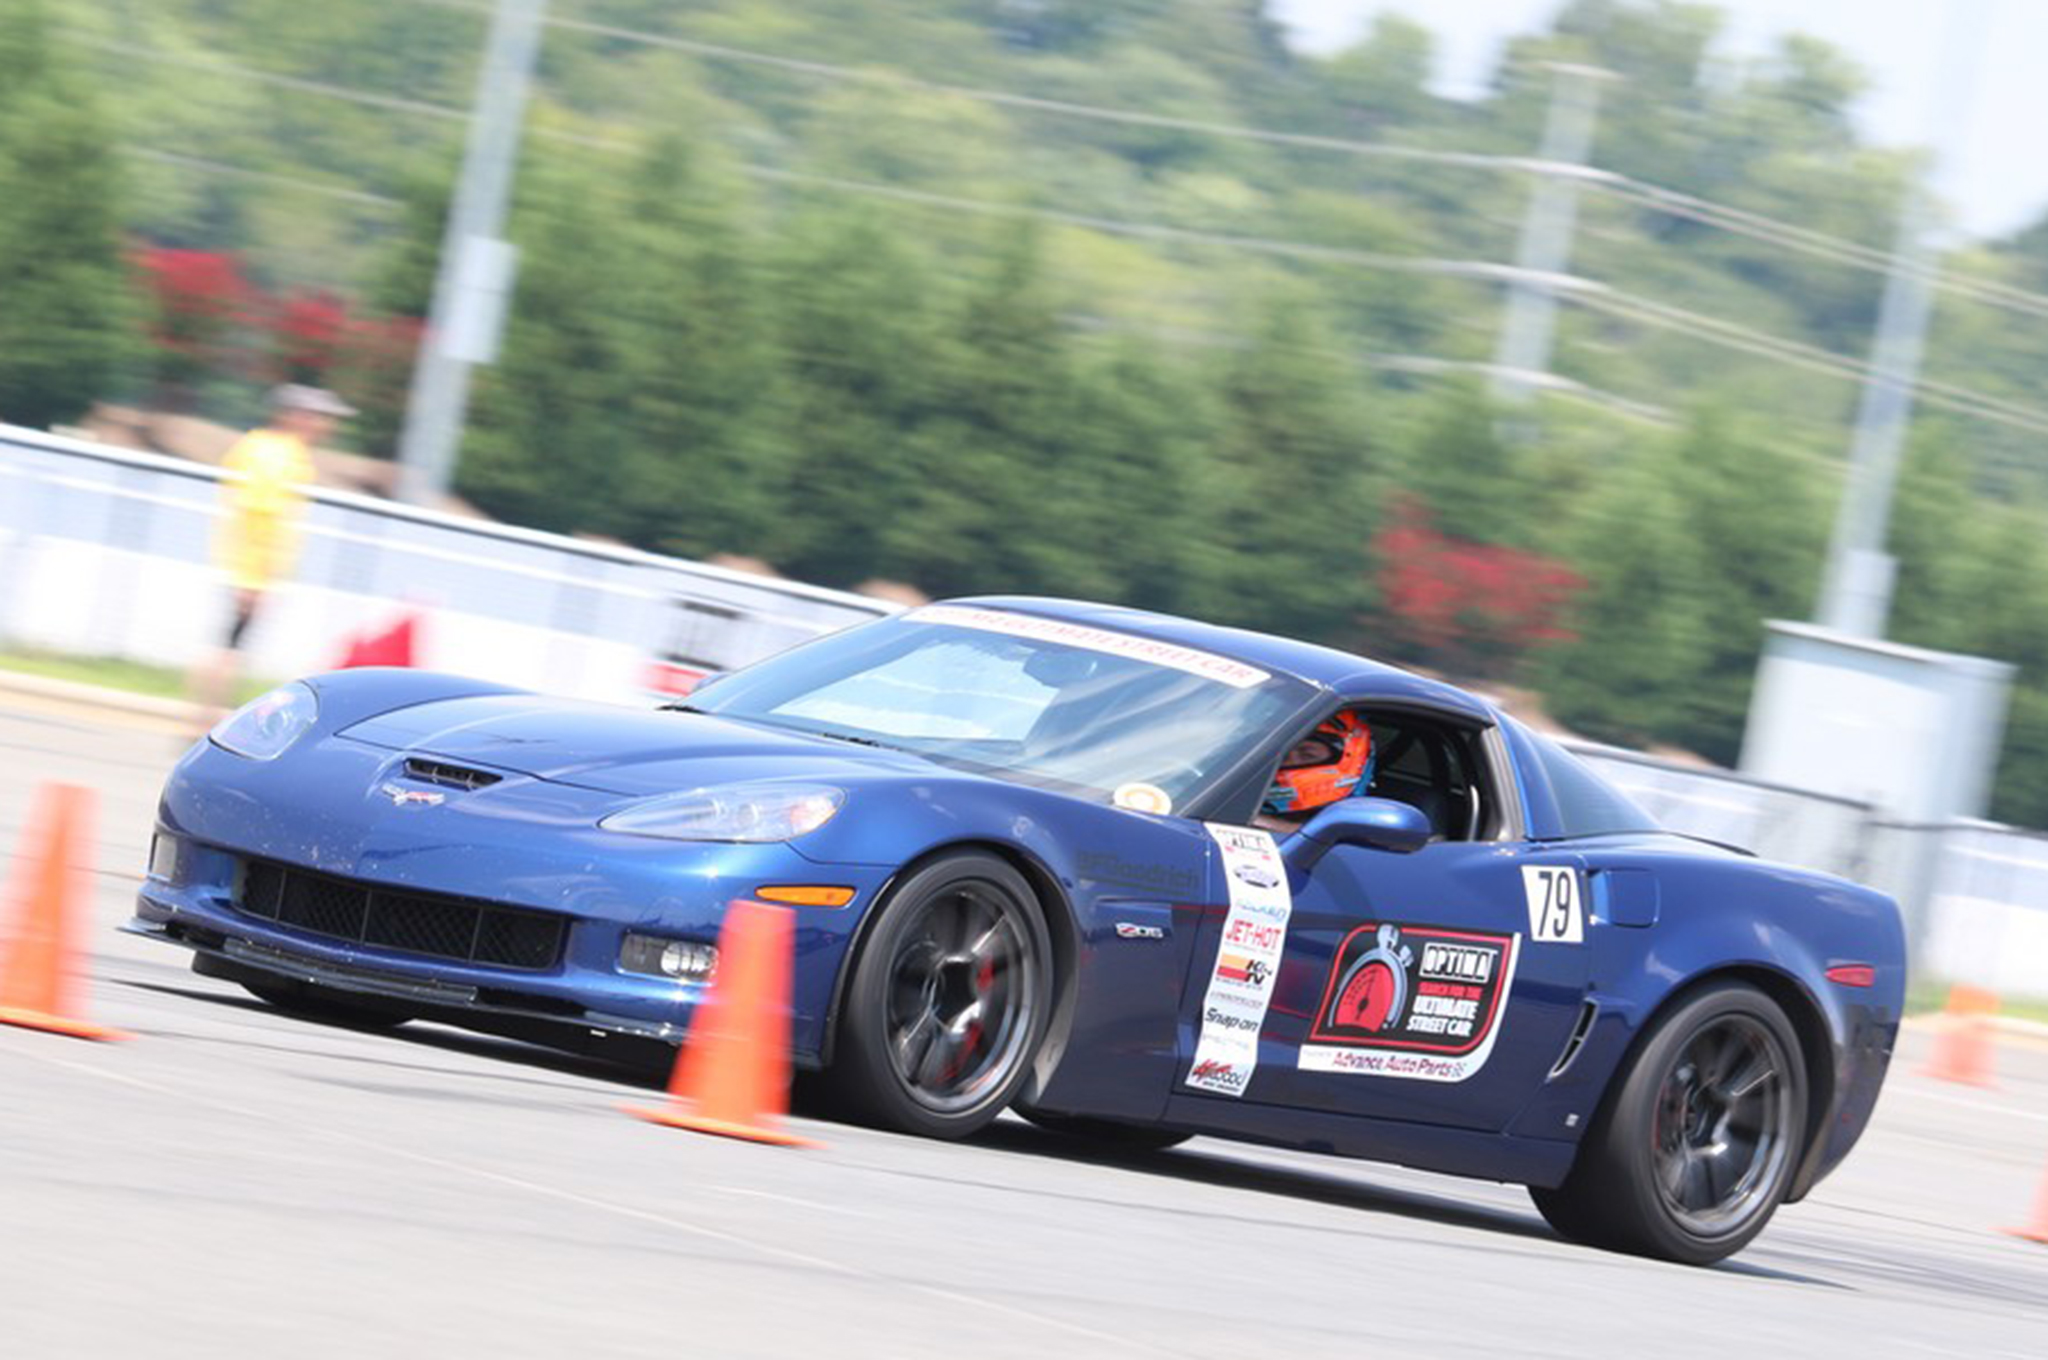 It took an all-wheel-drive Nissan GT-R to knock Joe Gregory's 2007 Z06 out of the top spot in the Detroit Speed Autocross.